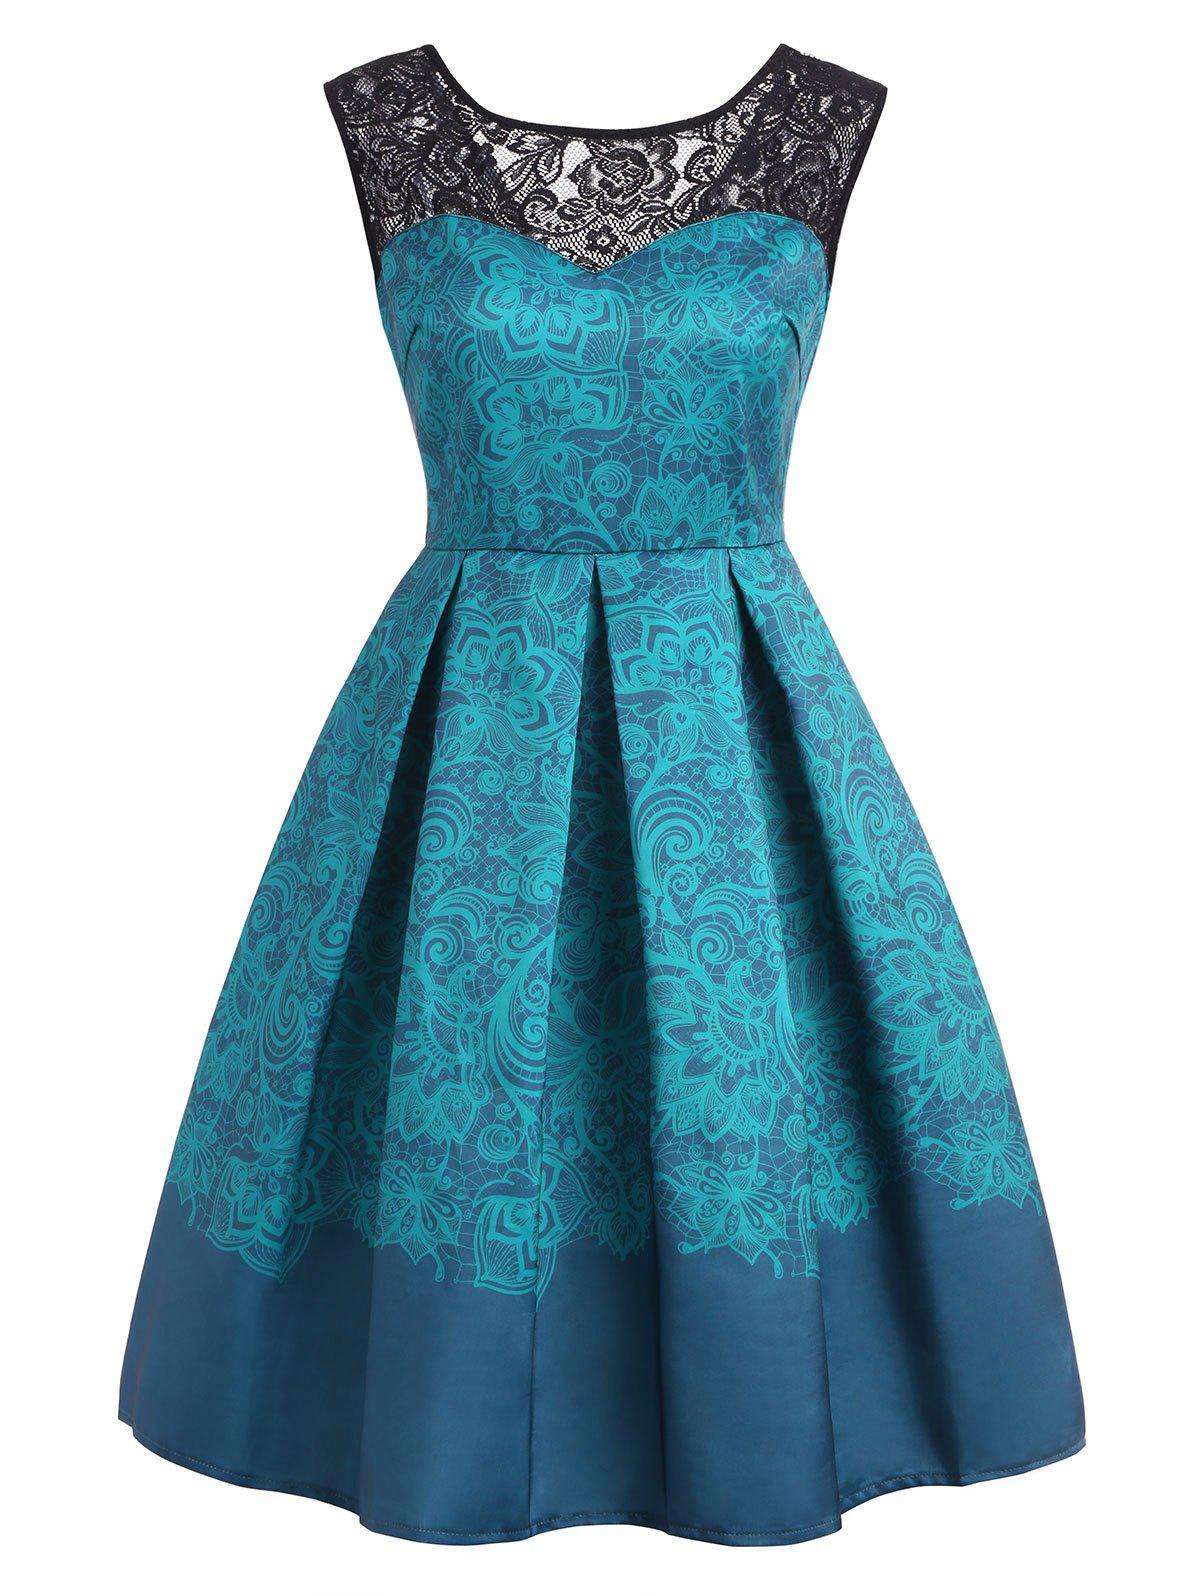 High Waisted Print A Line Dress - BLUE IVY S